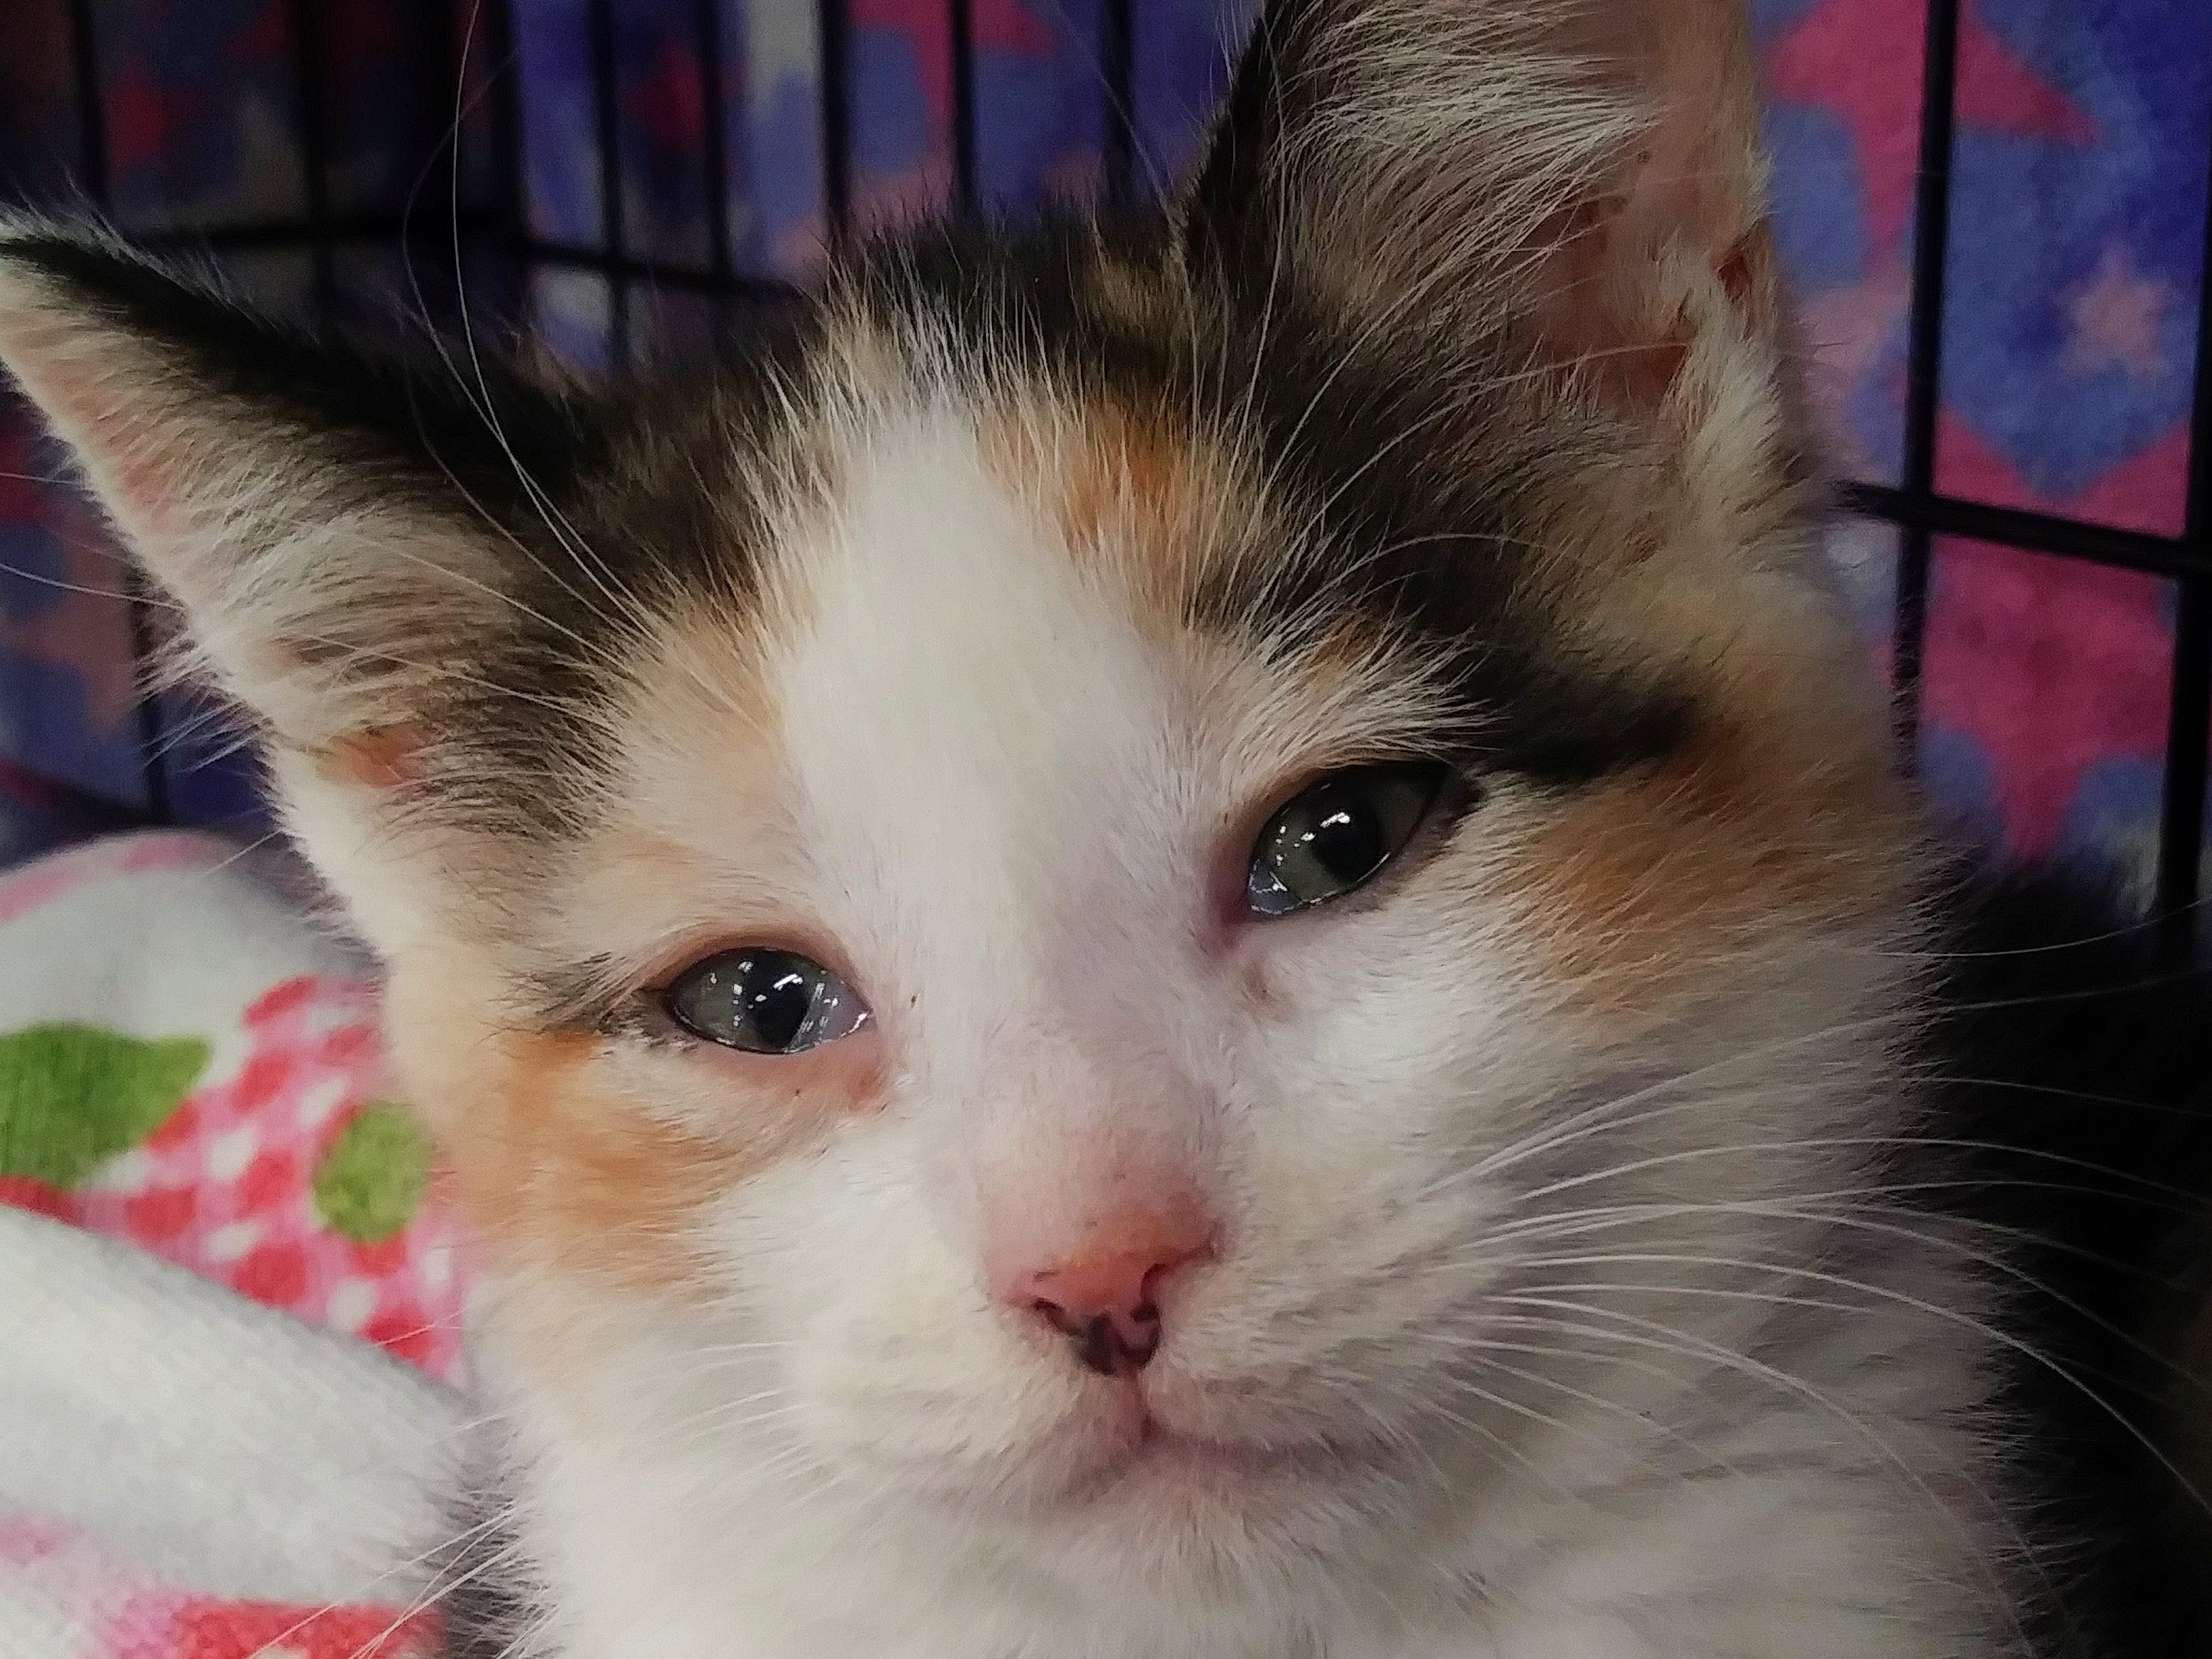 Juno is a 10-week-old, female calico kitten. She's very playful and loves attention. Email Spay Neuter and Protect at Snap.spayneuterandprotect@gmail.com. Call 209-6966.